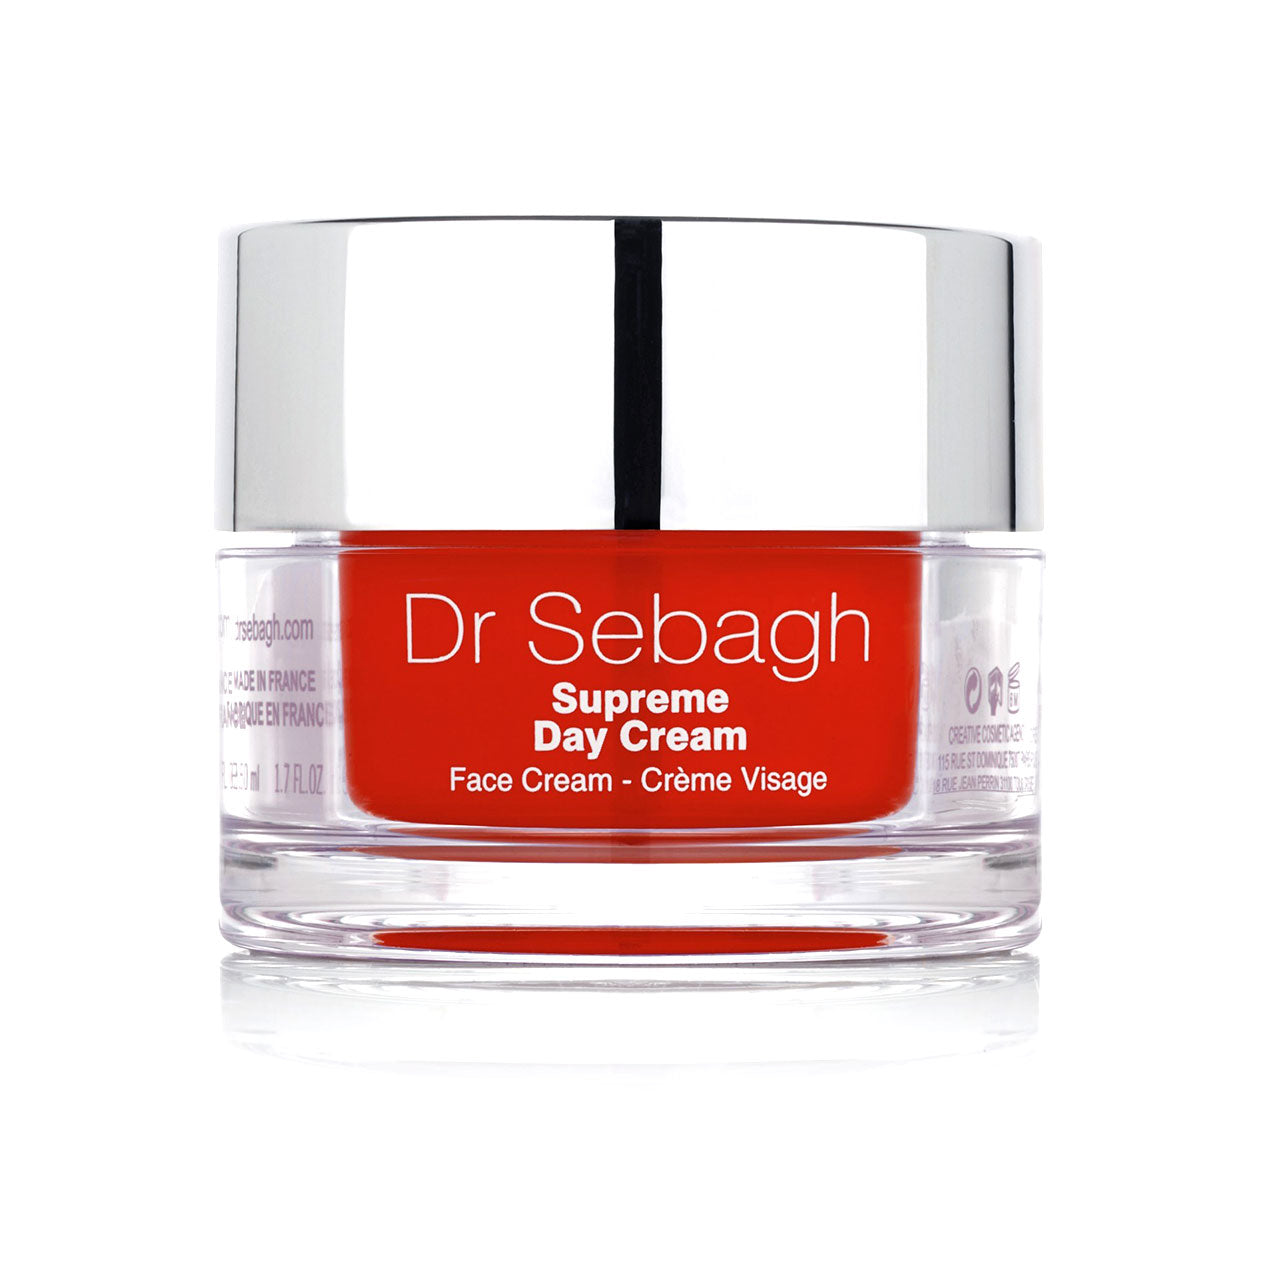 DR. SEBAGH - Supreme Day Cream - 50ml